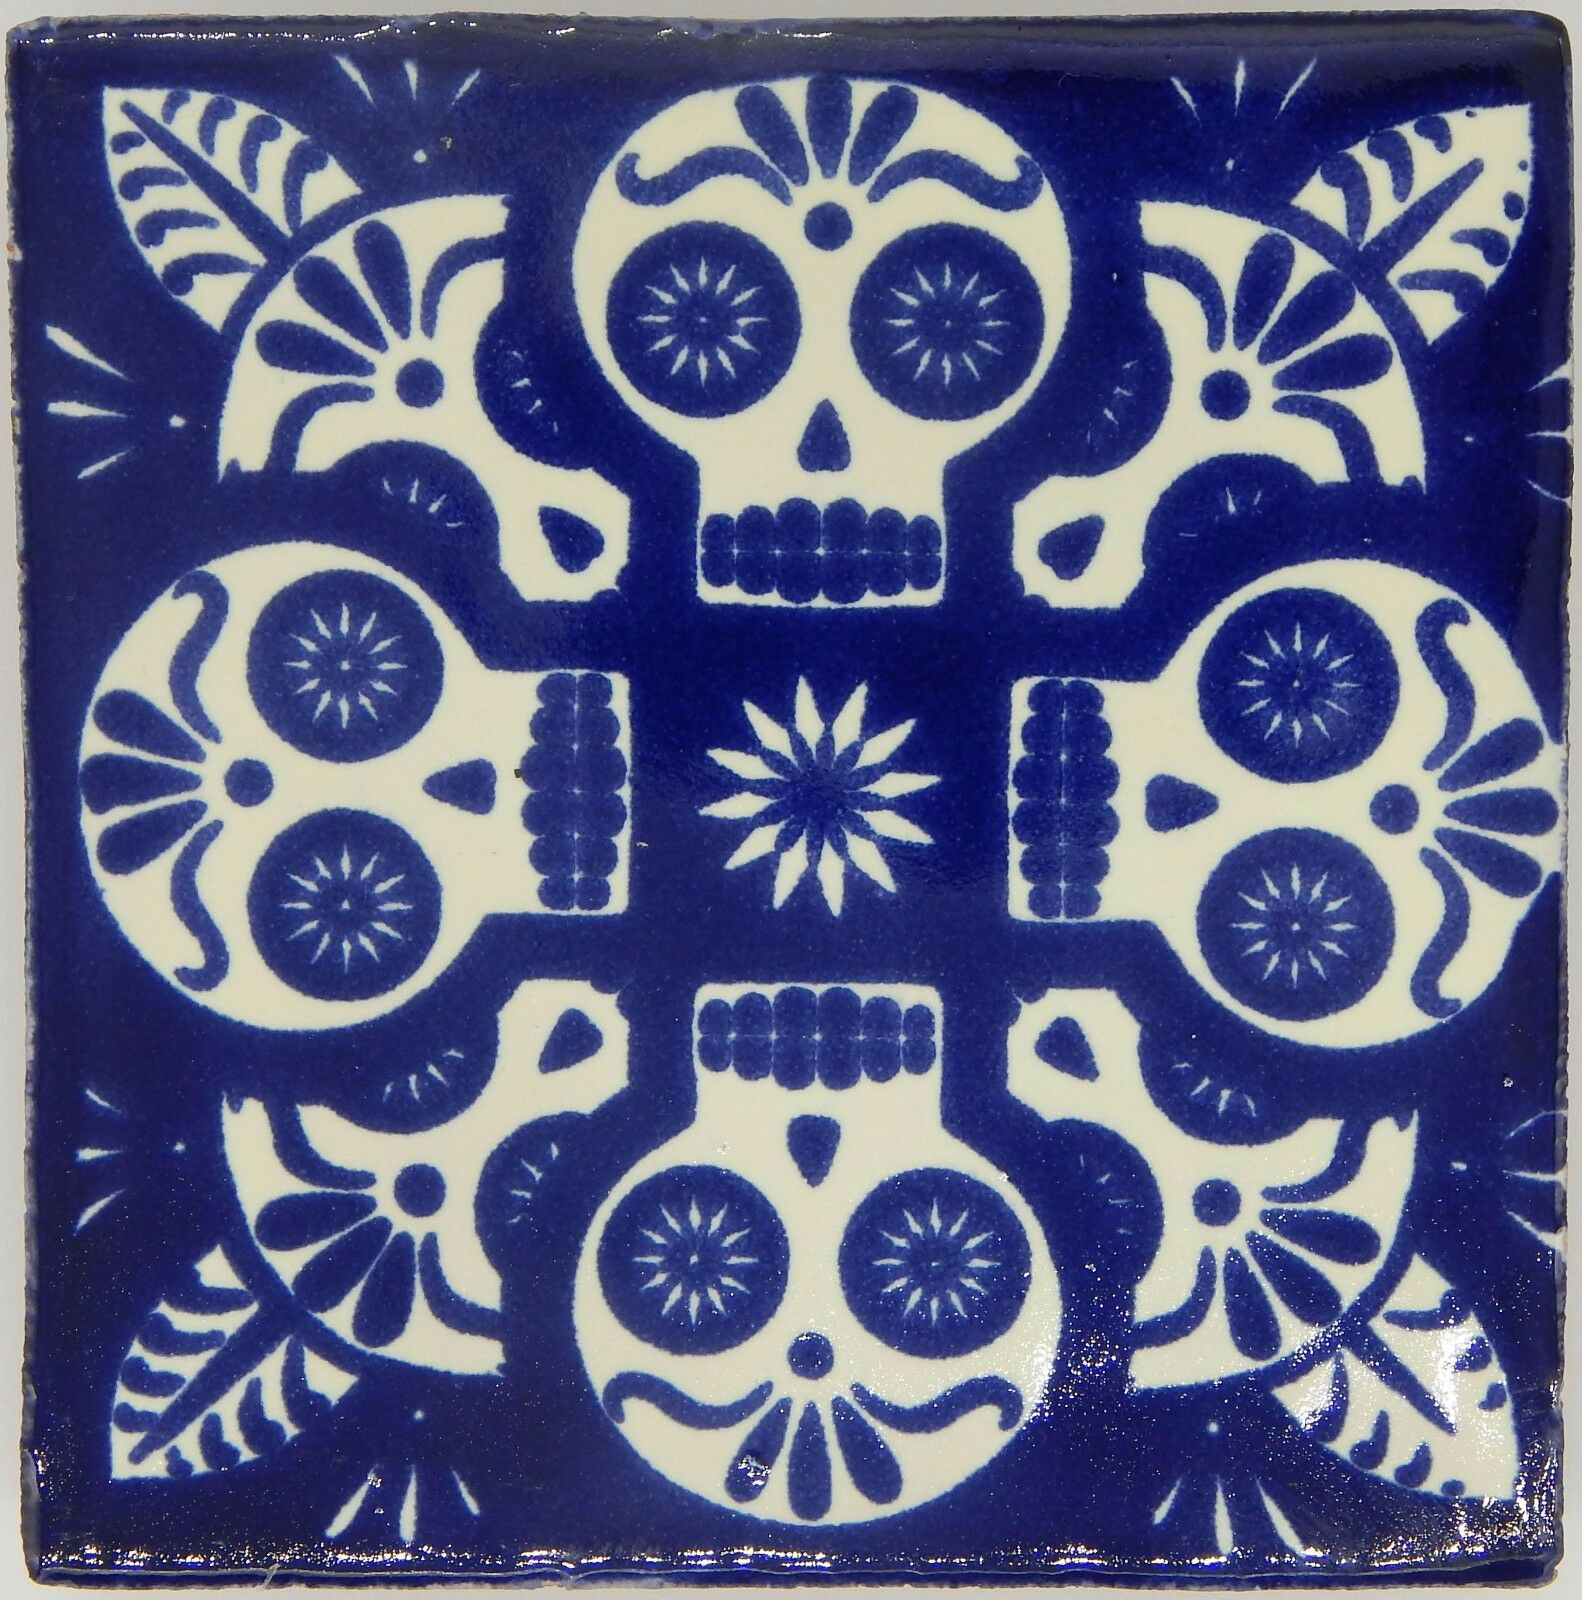 100 Mexican Talavera tiles 4x4 Decorative Folk Art Handmade C395